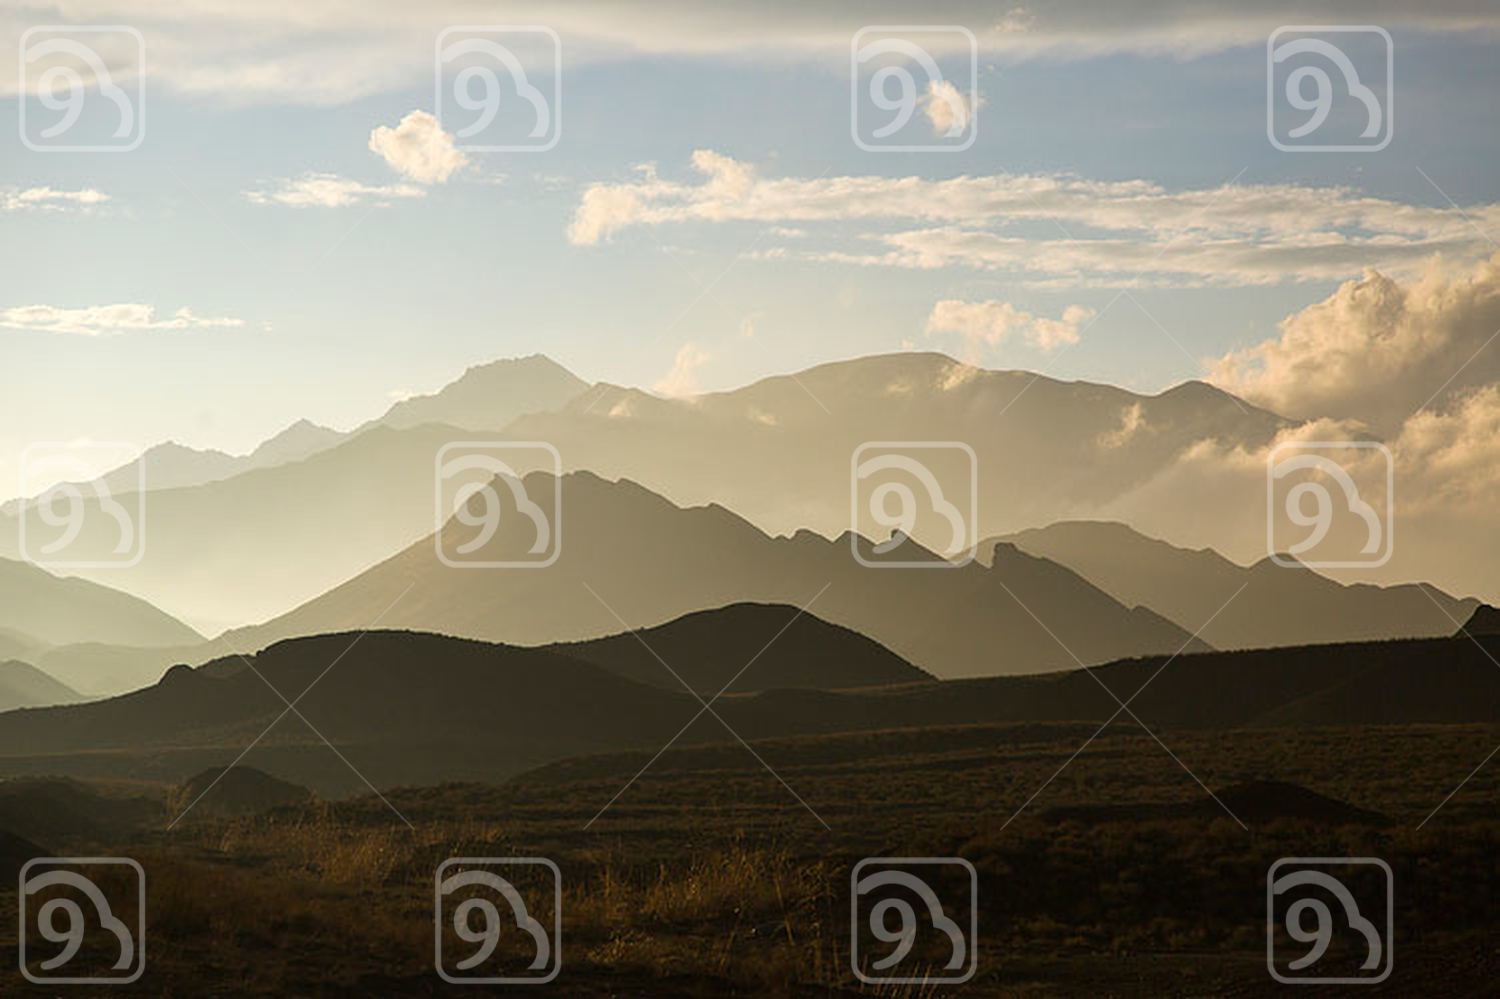 Mountain range and sky in Gansu province, China